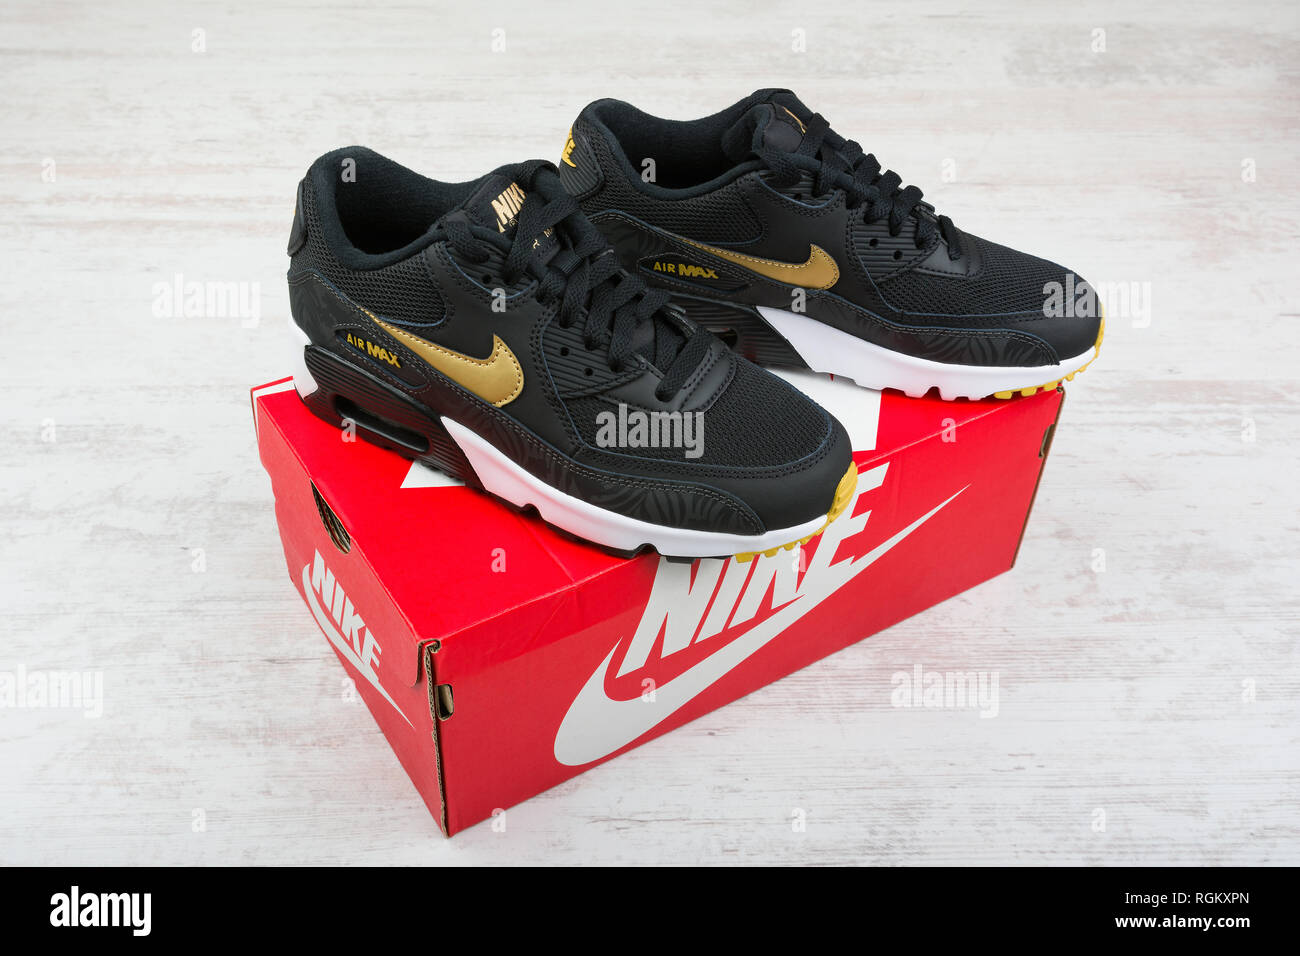 the latest dc7fb b5432 BURGAS, BULGARIA - DECEMBER 30, 2016  Nike Air MAX women s shoes - sneakers